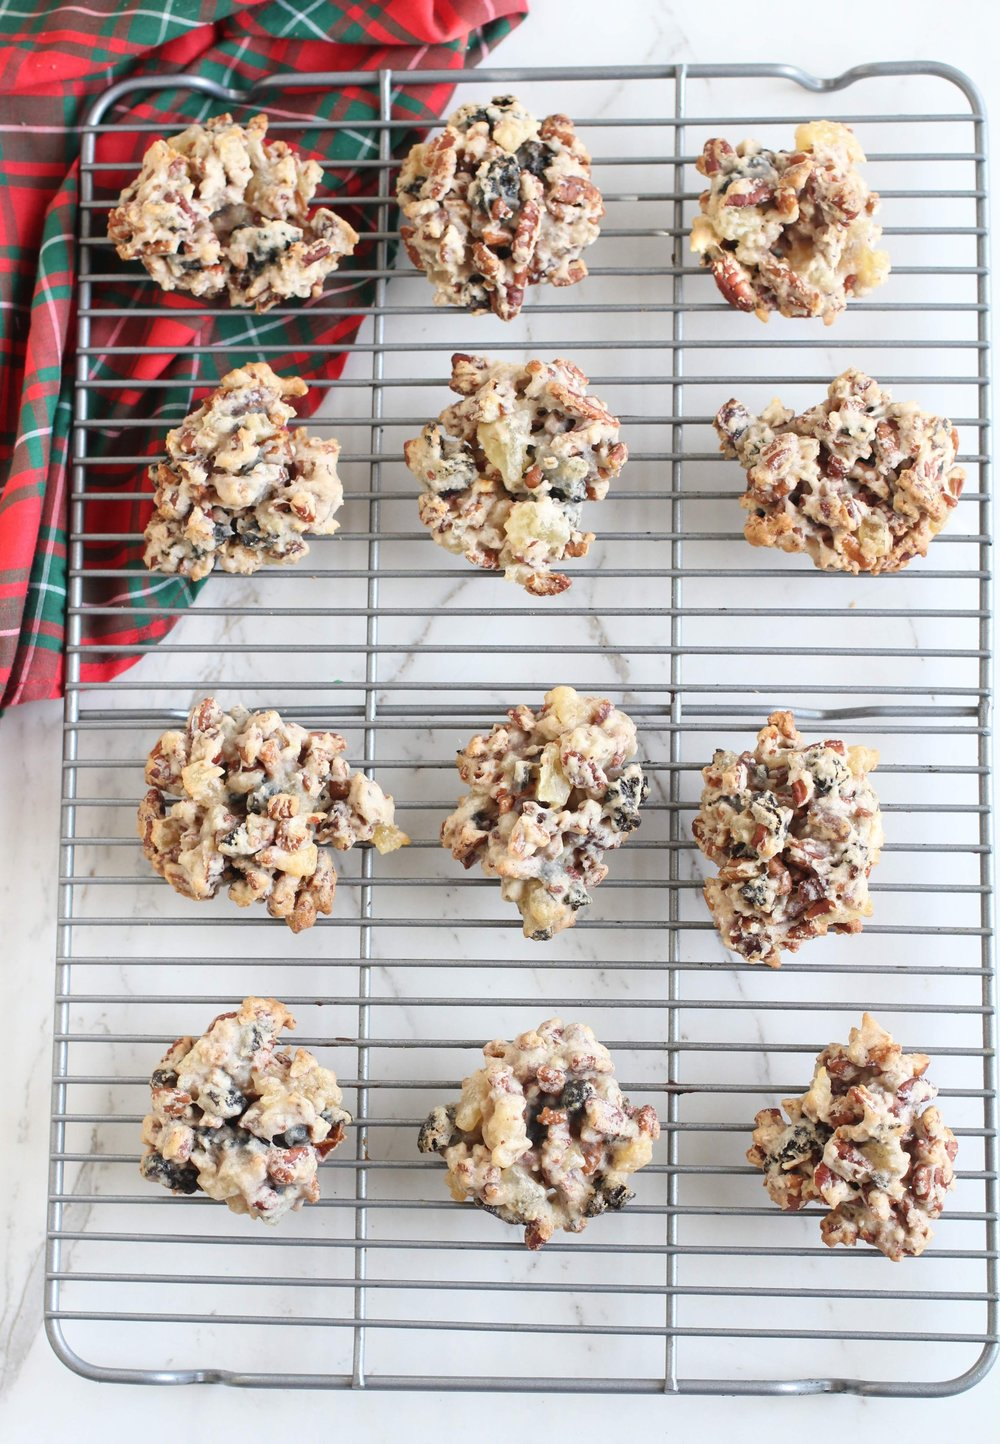 gltuen free and dairy free cookie recipe